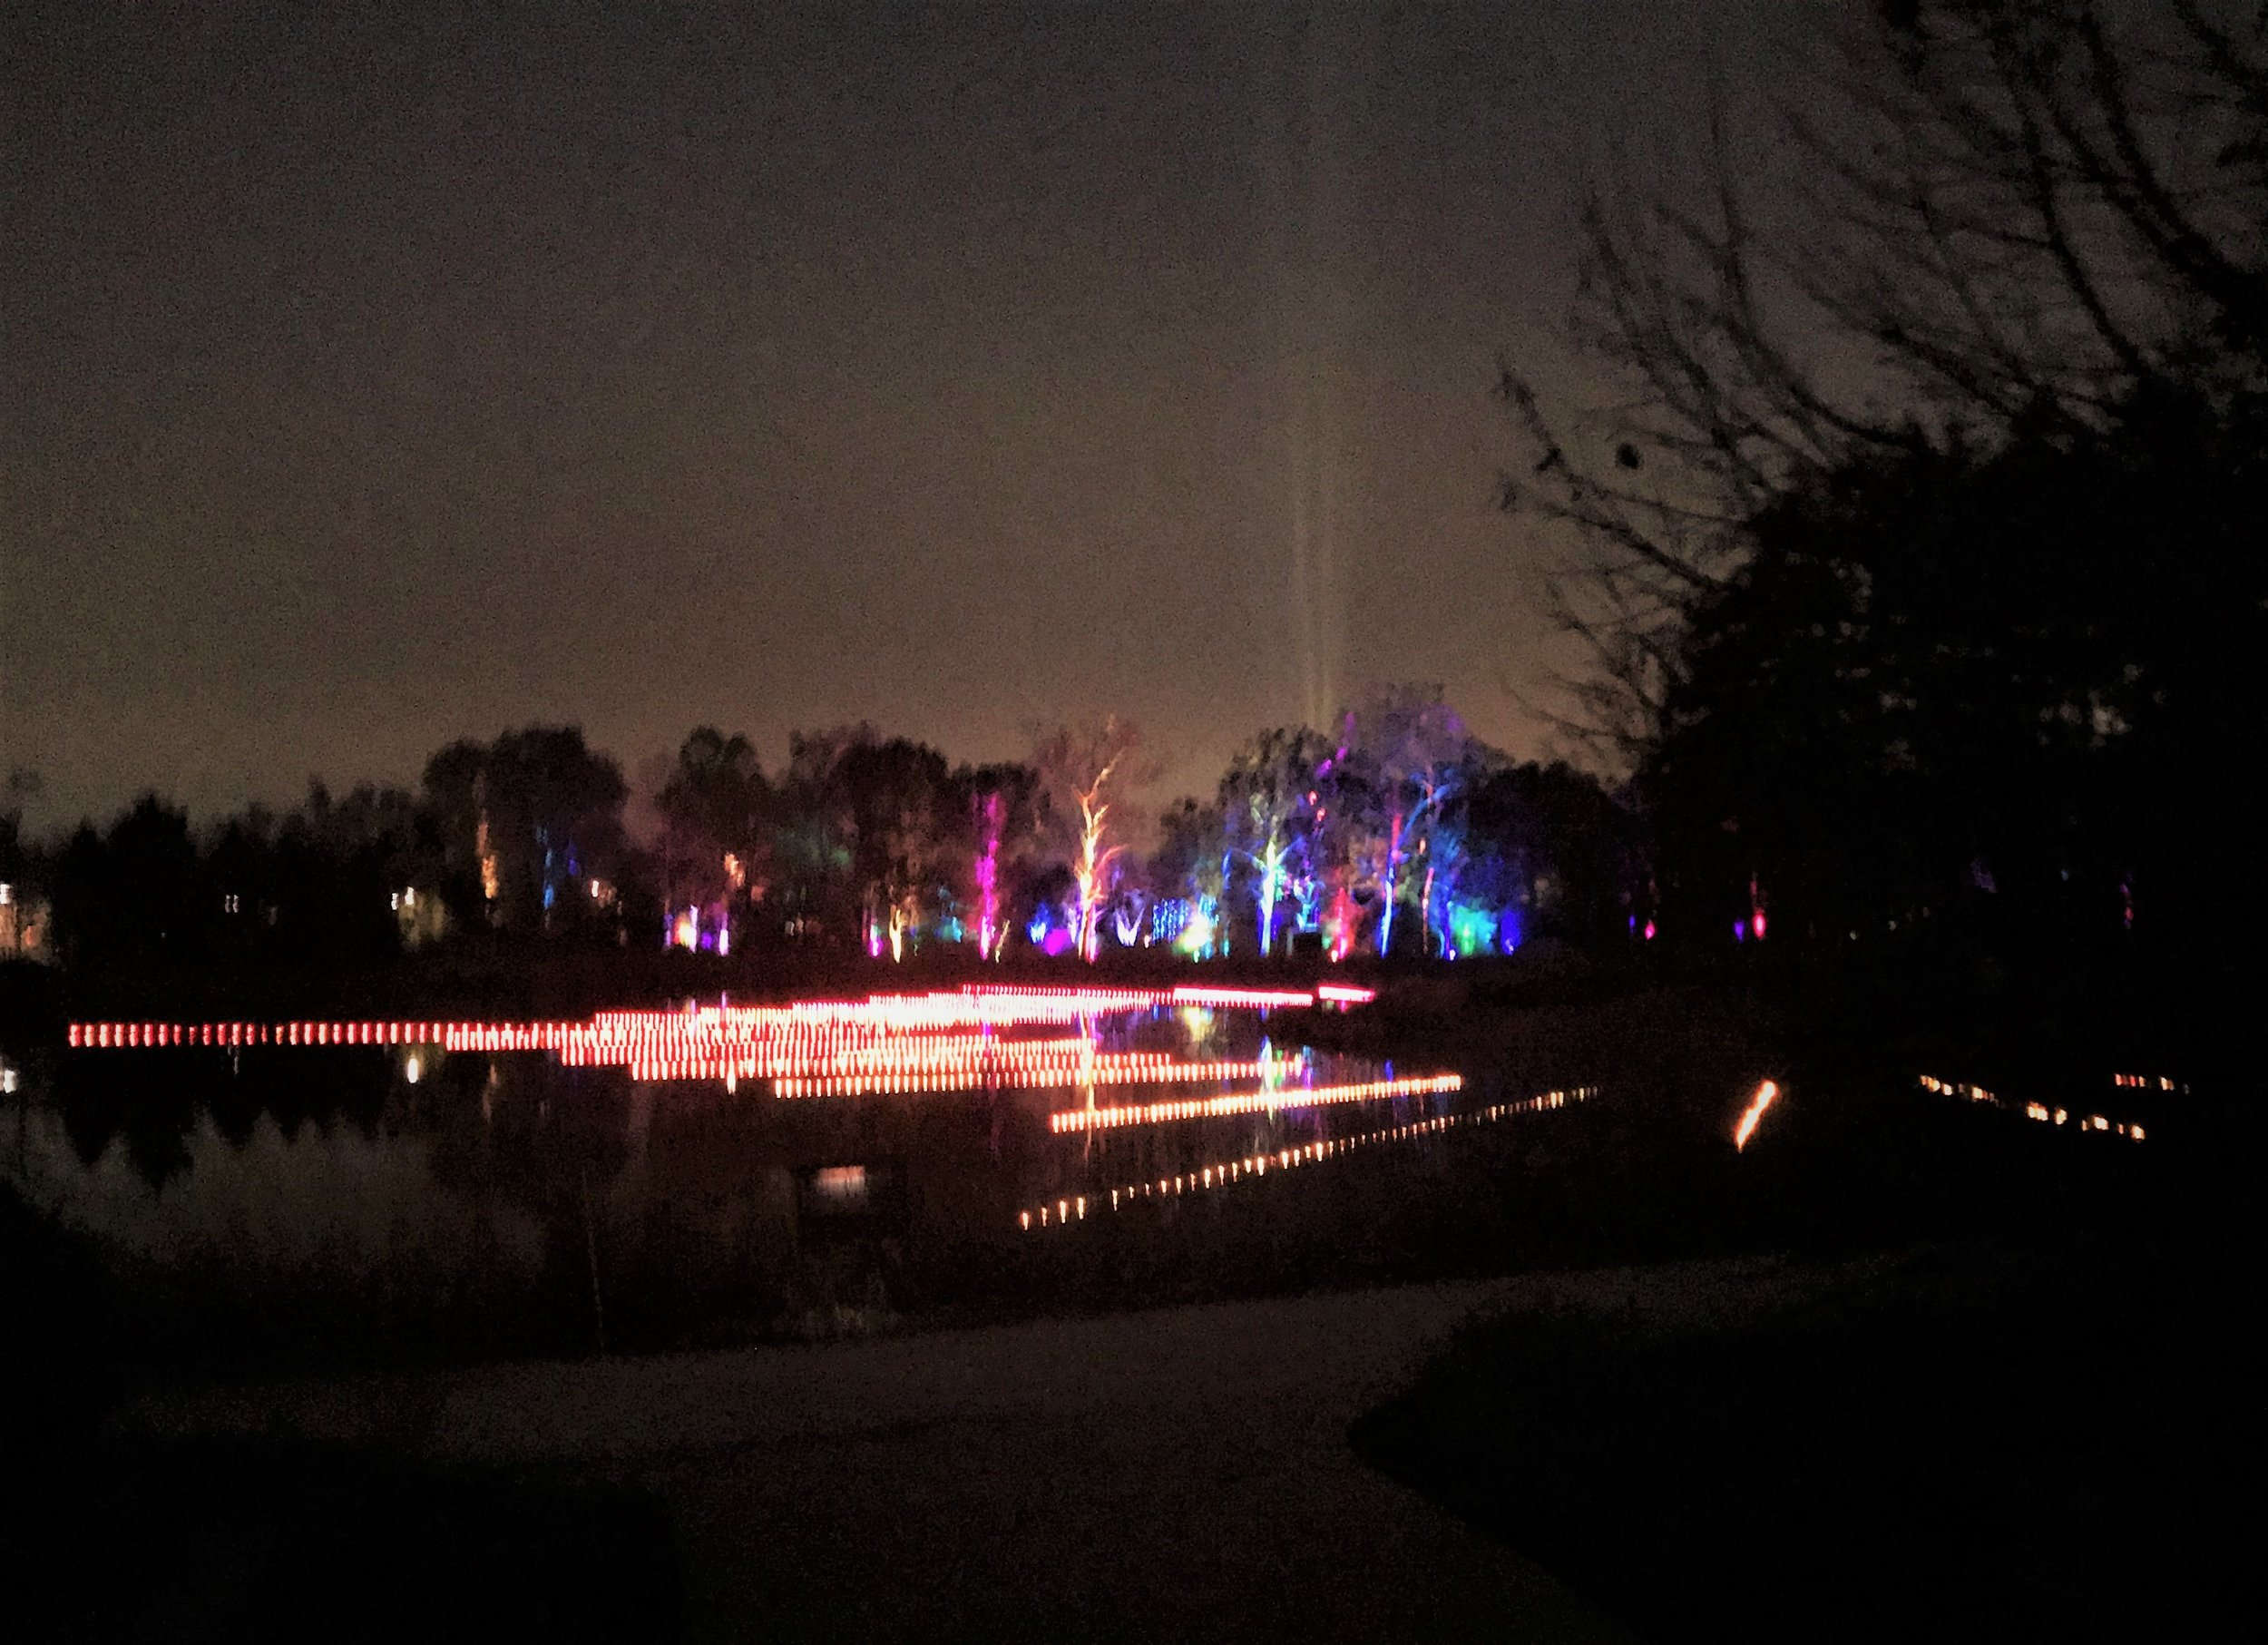 Lights on the surface of Morton Arboretum's Meadow Lake